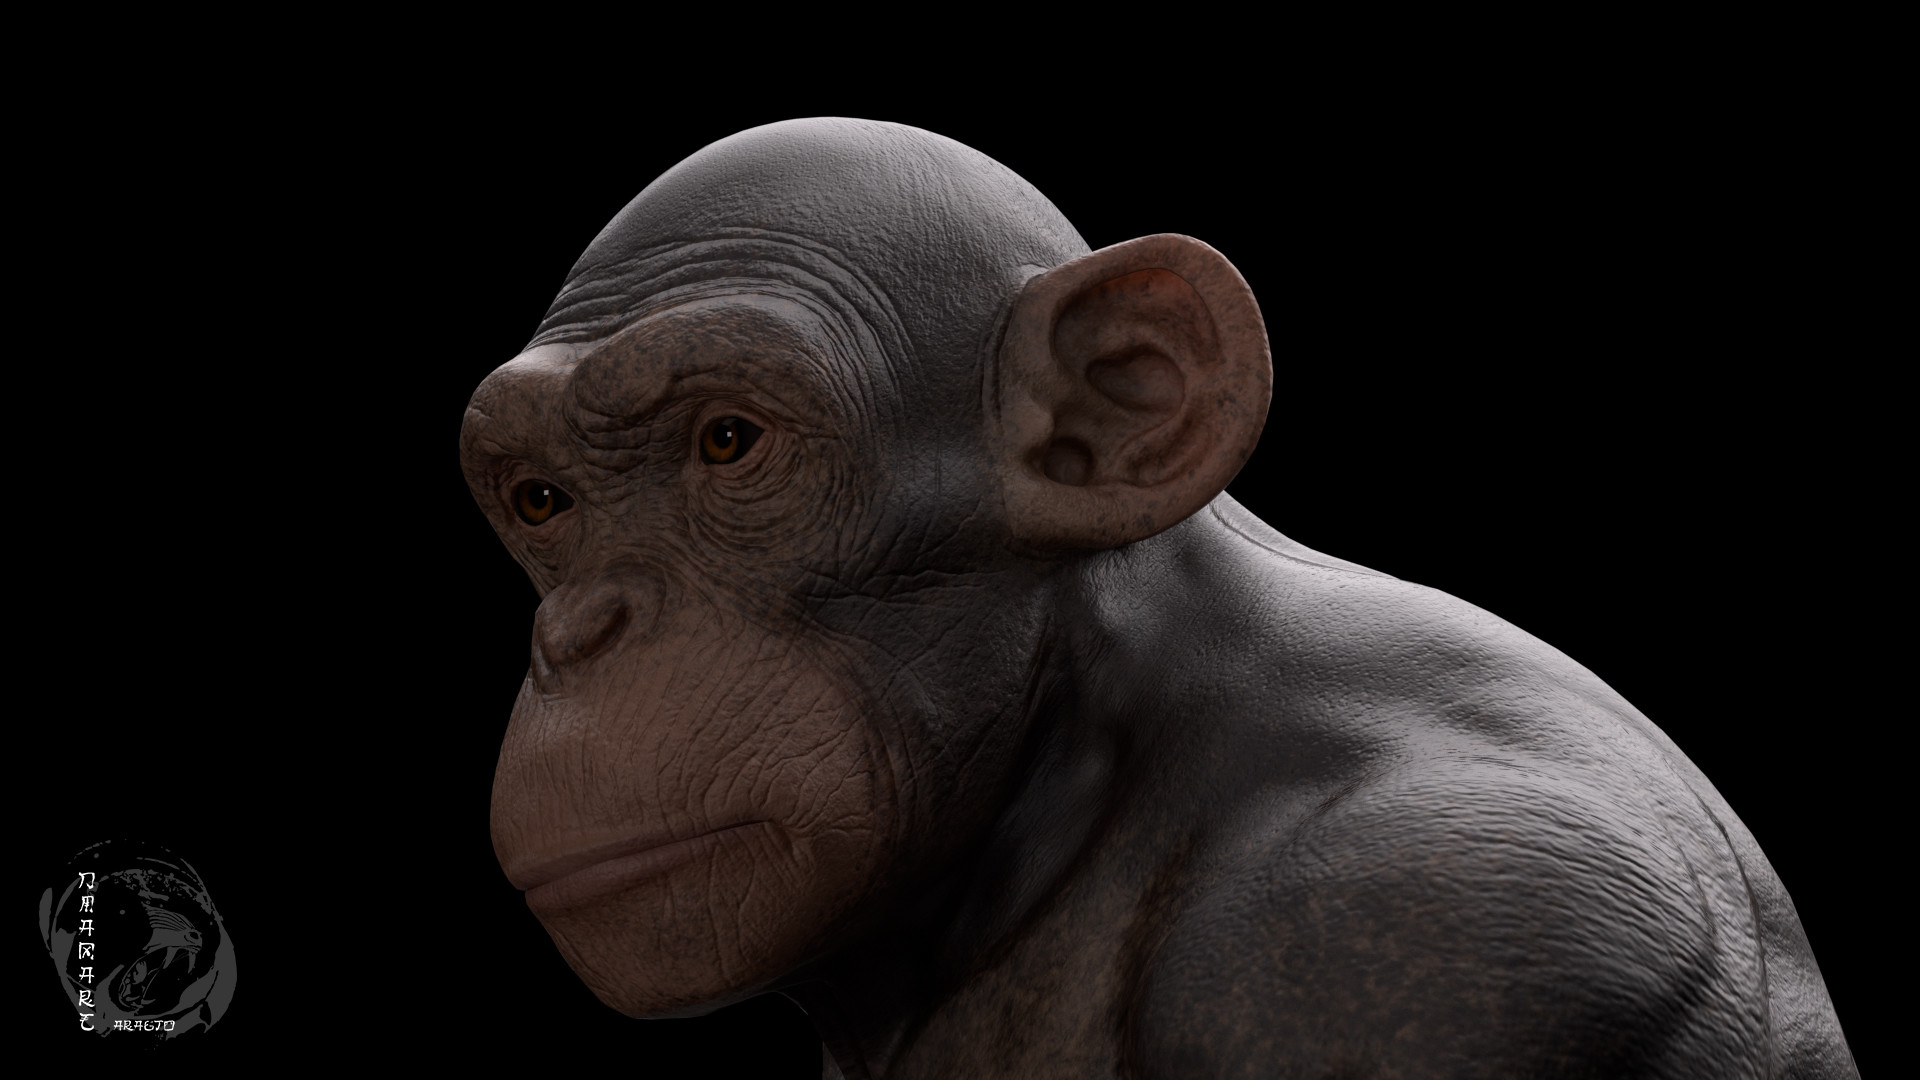 Dimax esteban araujo chimp render1